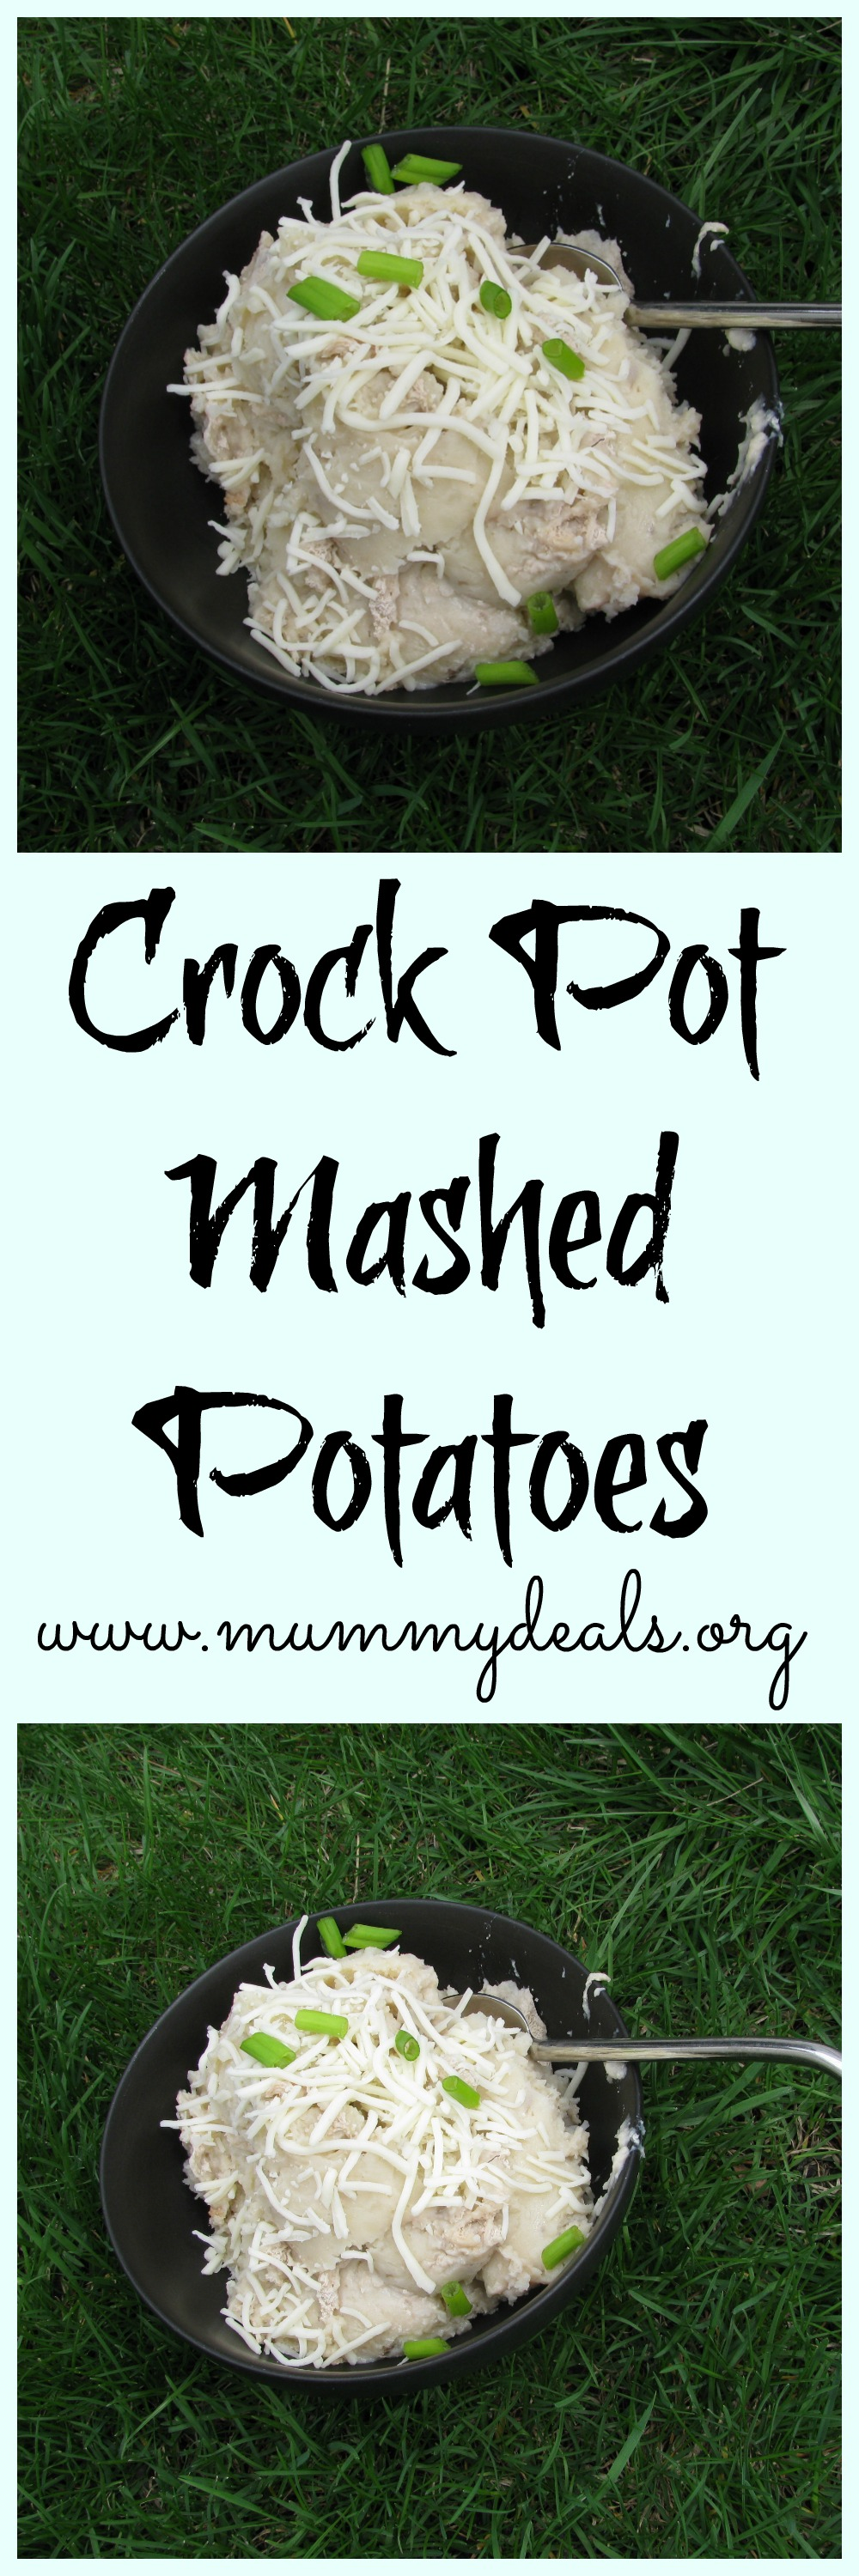 Crock Pot Mashed Potatoes Recipe